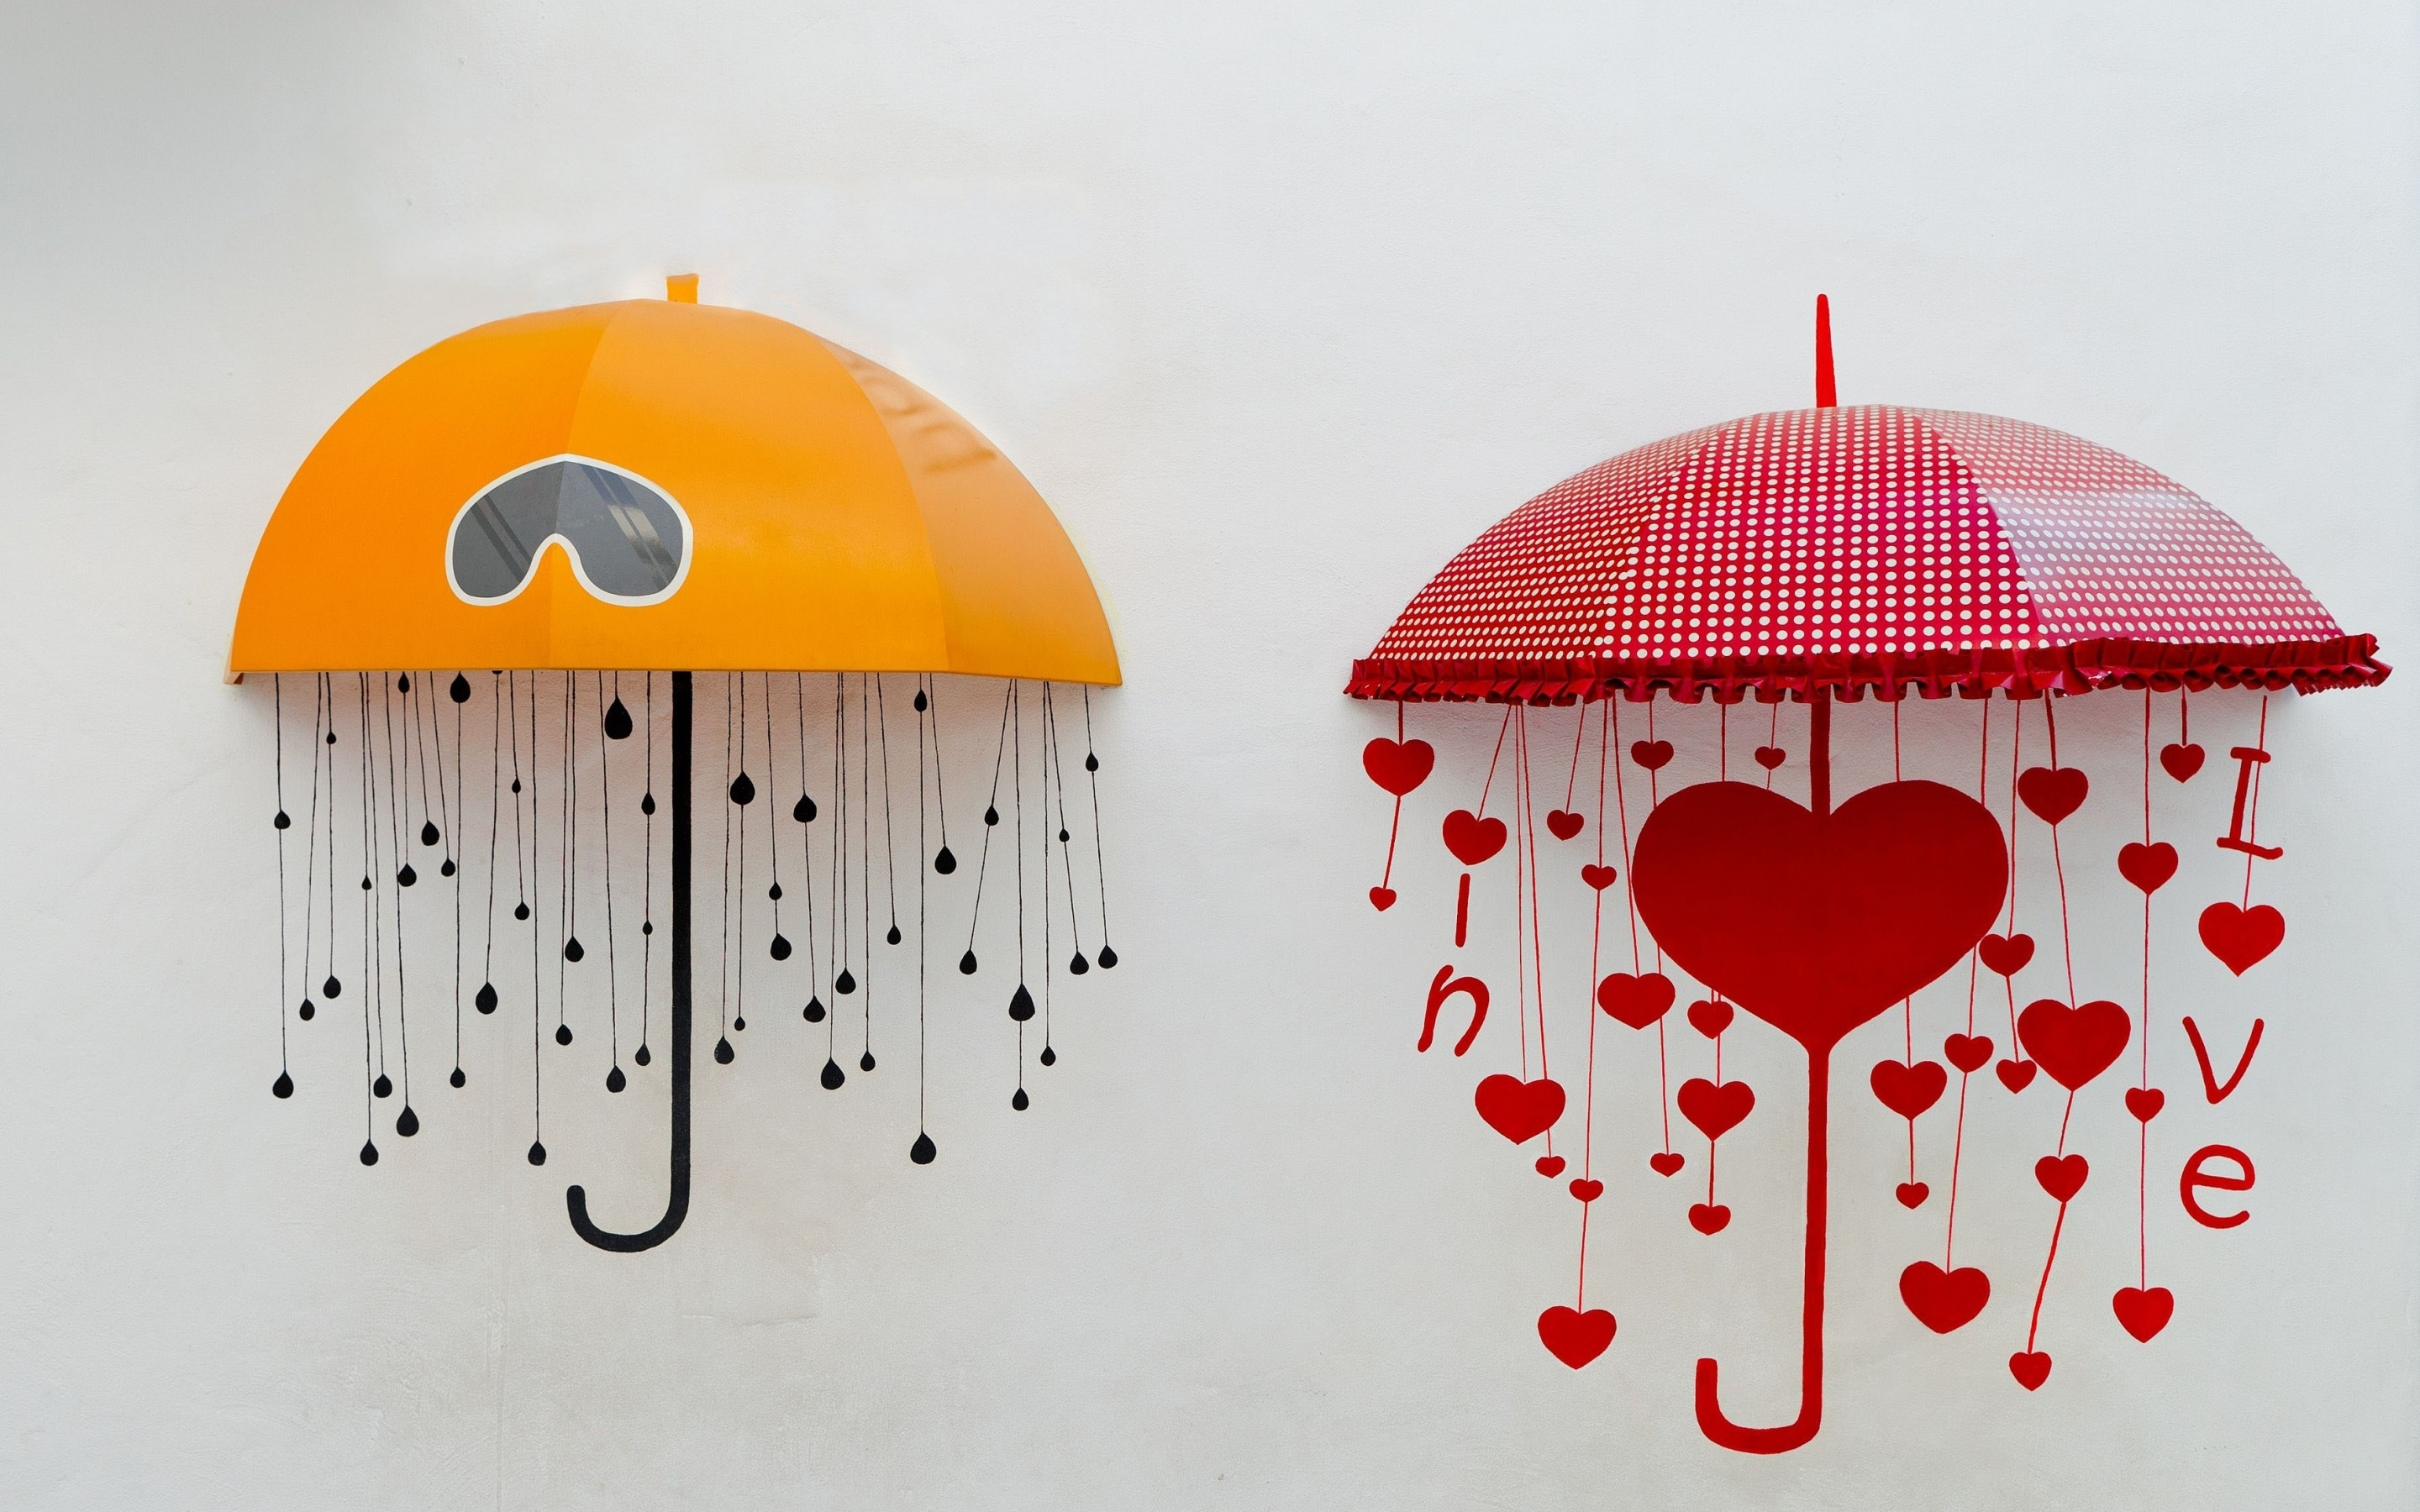 Love cute umbrella wallpaper